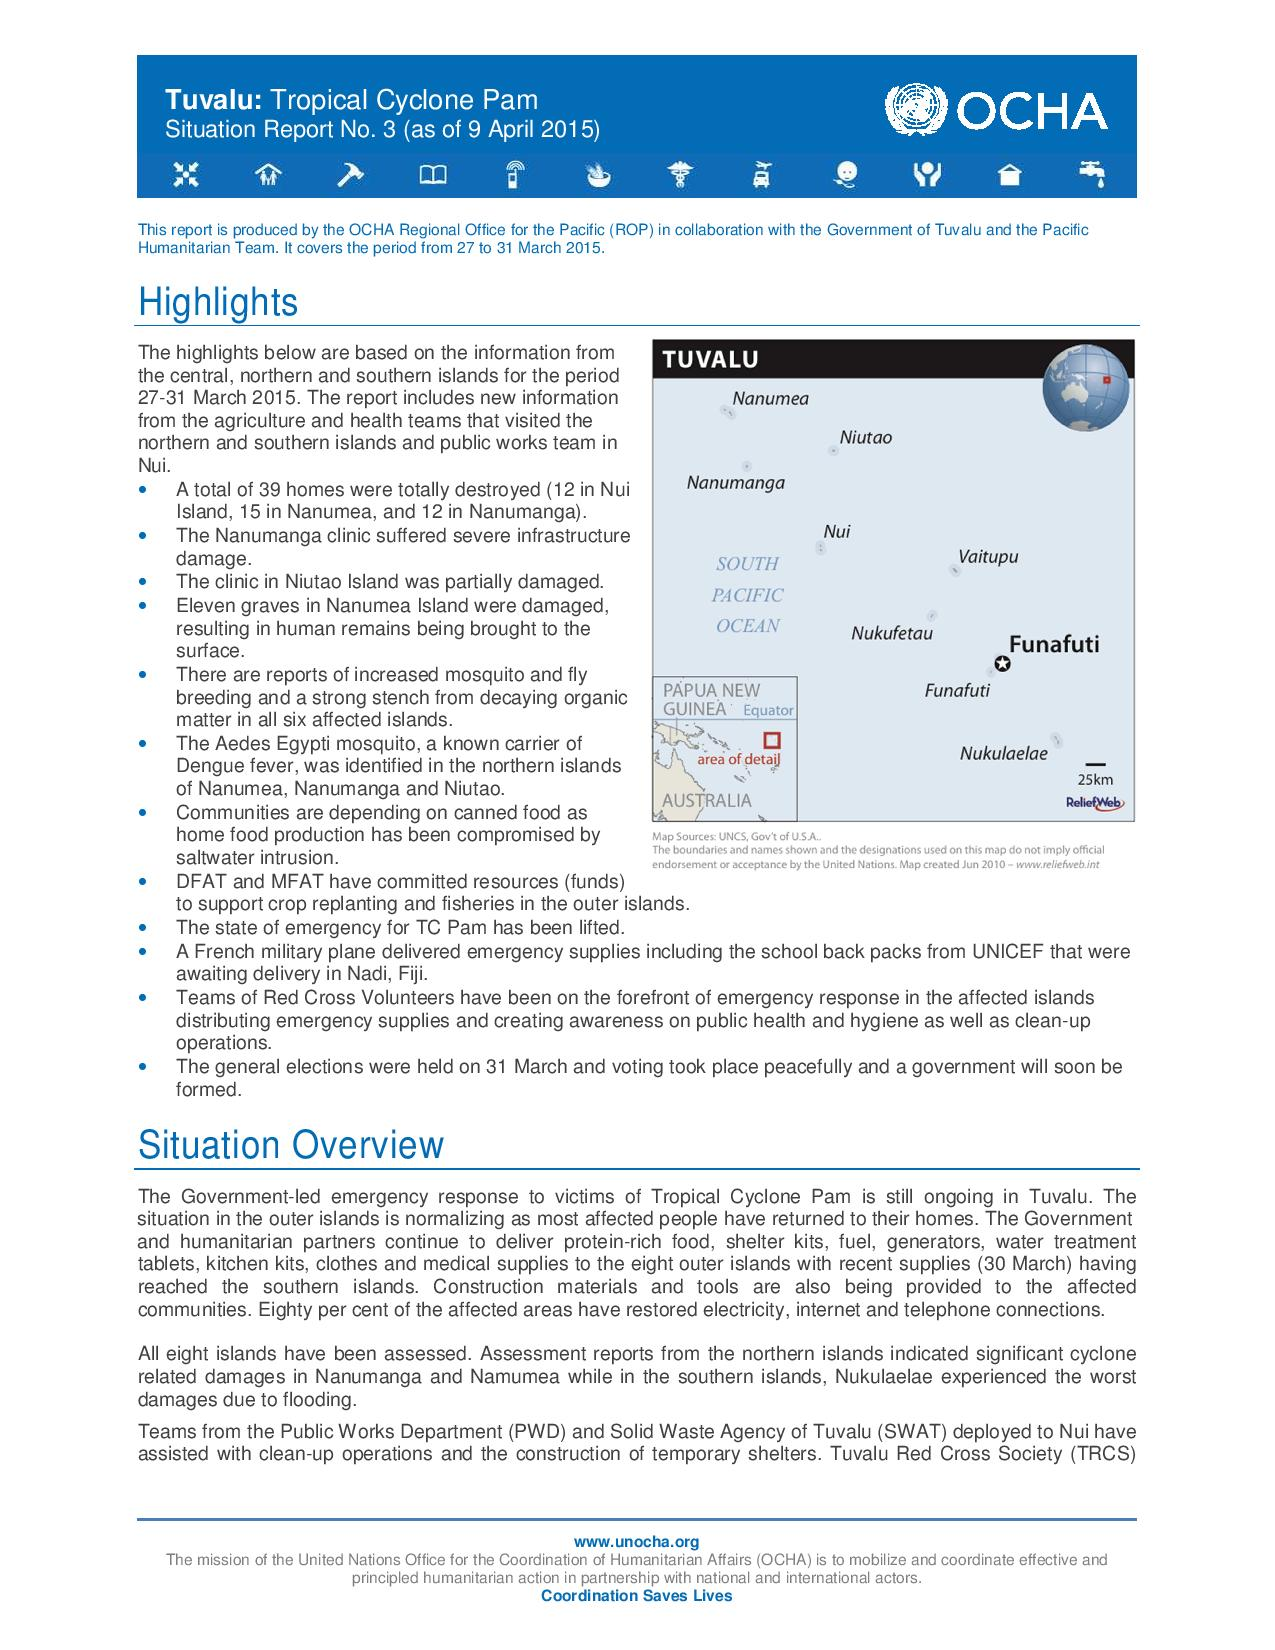 reliefweb.int_sites_reliefweb.int_files_resources_Tuvalu Tropical Cyclone Pam Situation Report No. 3-page-001.jpg